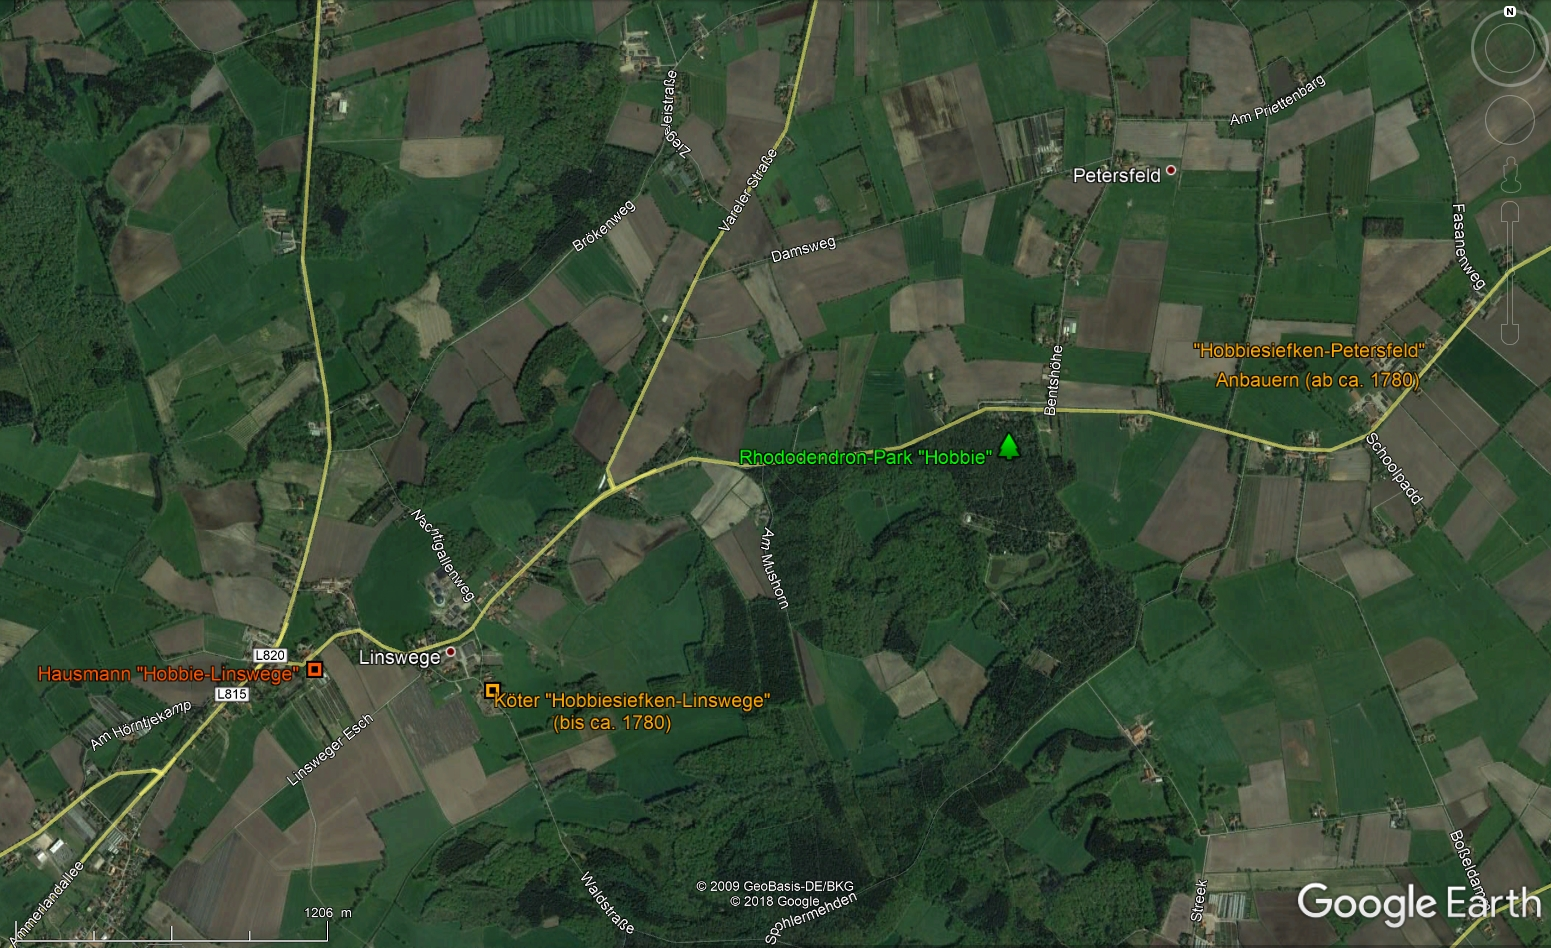 Hobbiesiefken in Linswege and Petersfeld in GoogleEarth